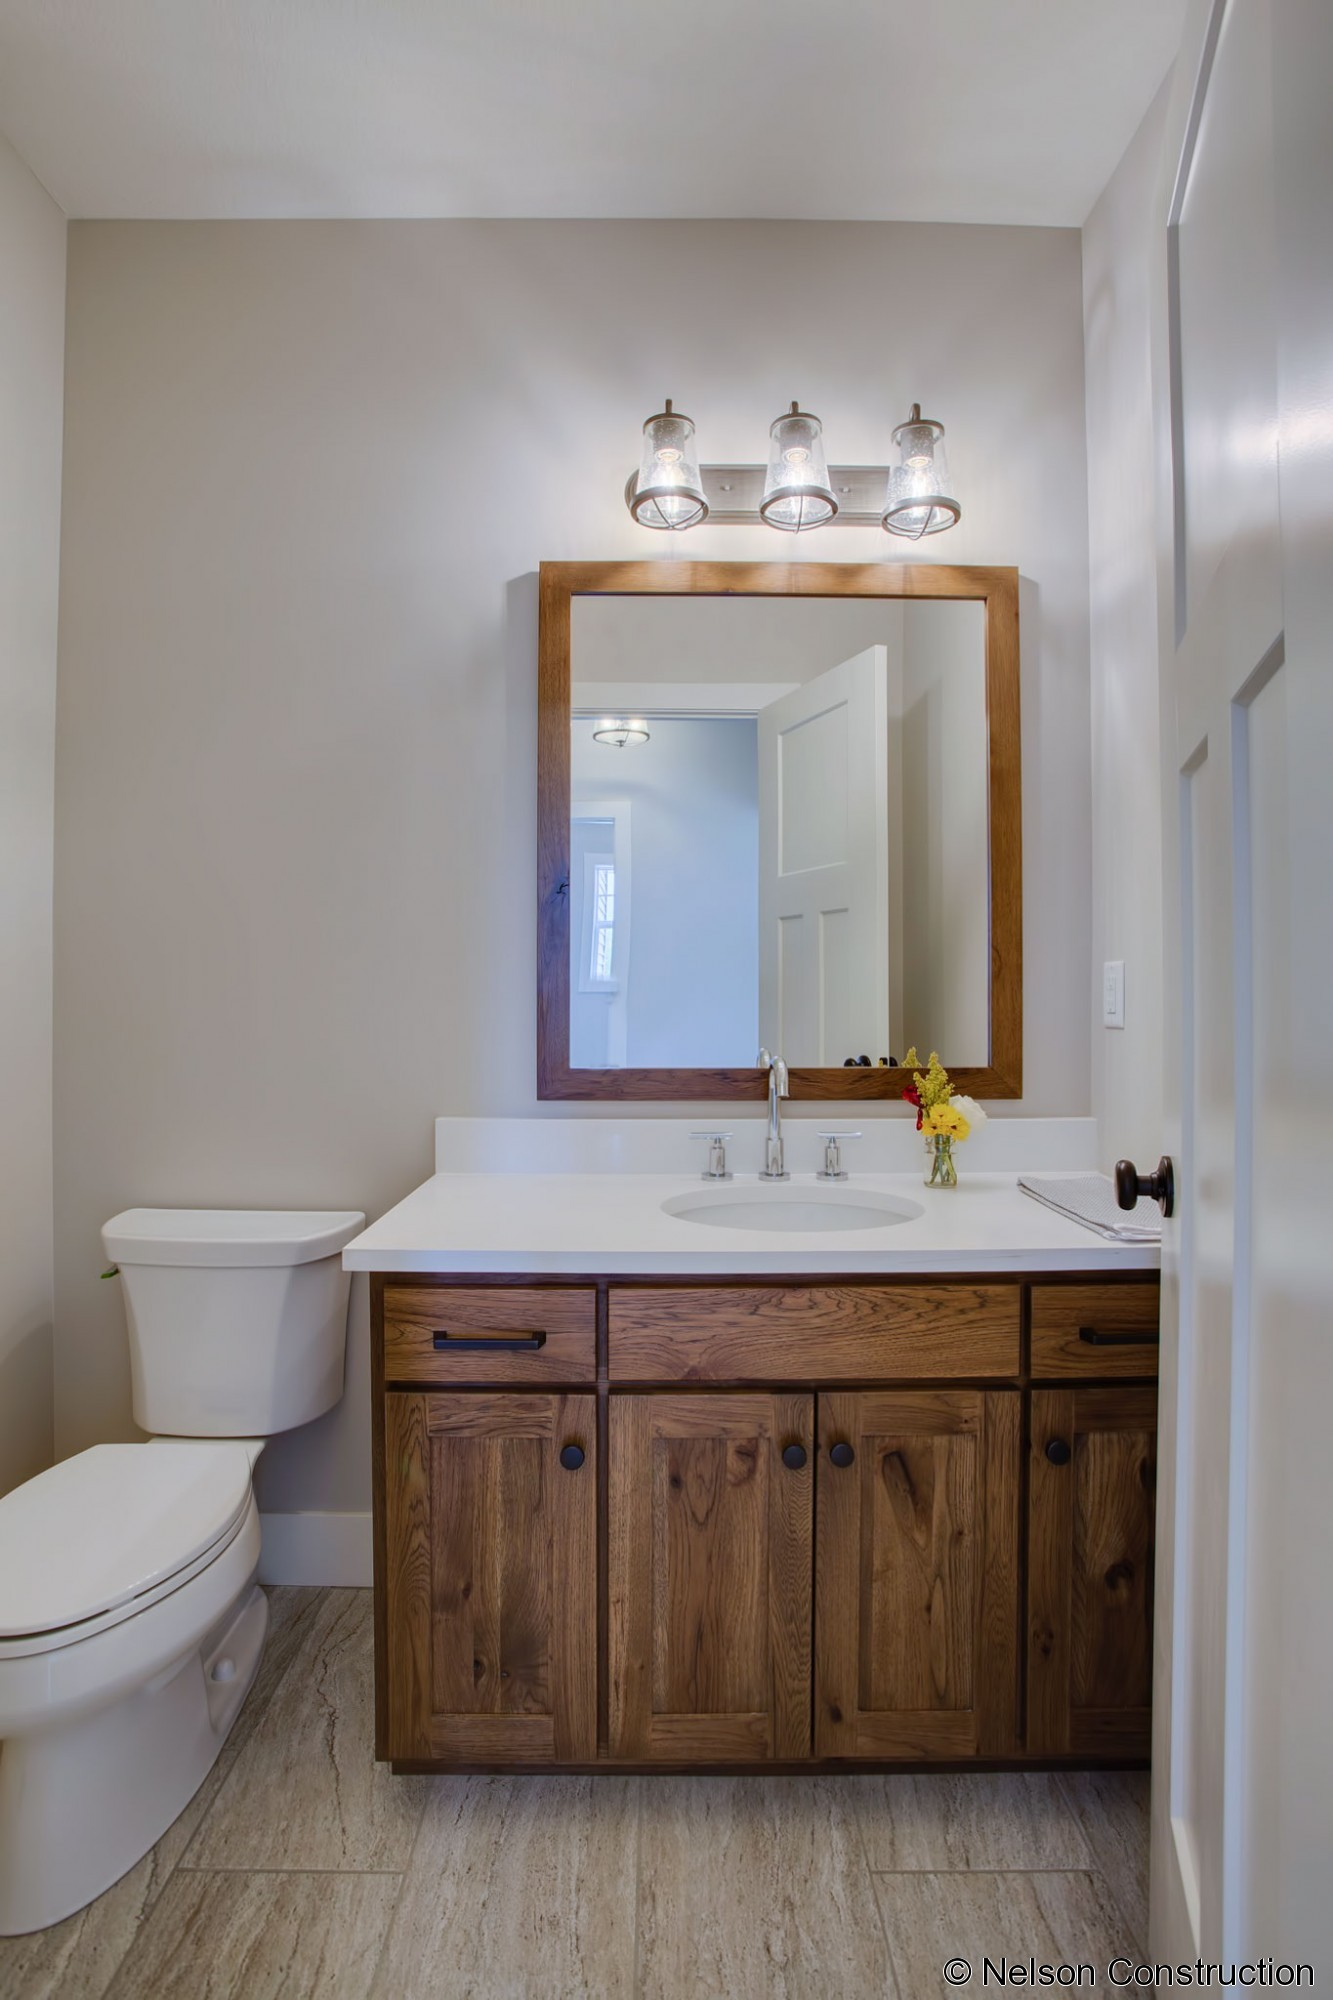 The half bath on the first floor is conveniently located off the kitchen and carries the designer inspired style found throughout the home.